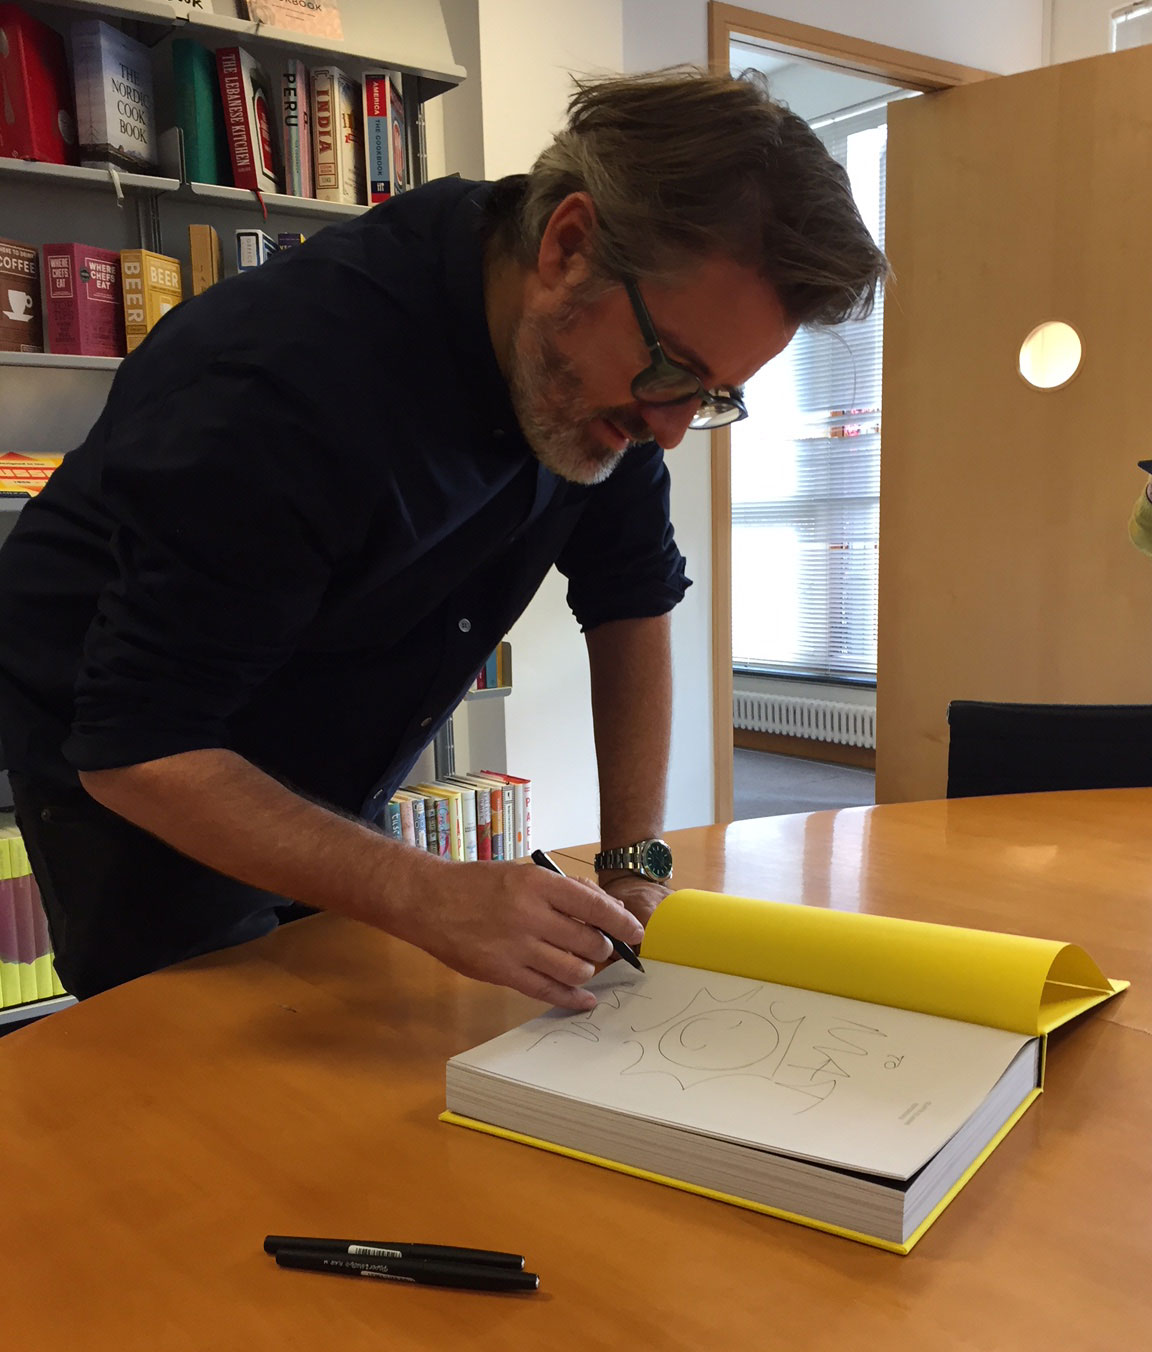 Olafur Eliasson signing copies of Experience at Phaidon